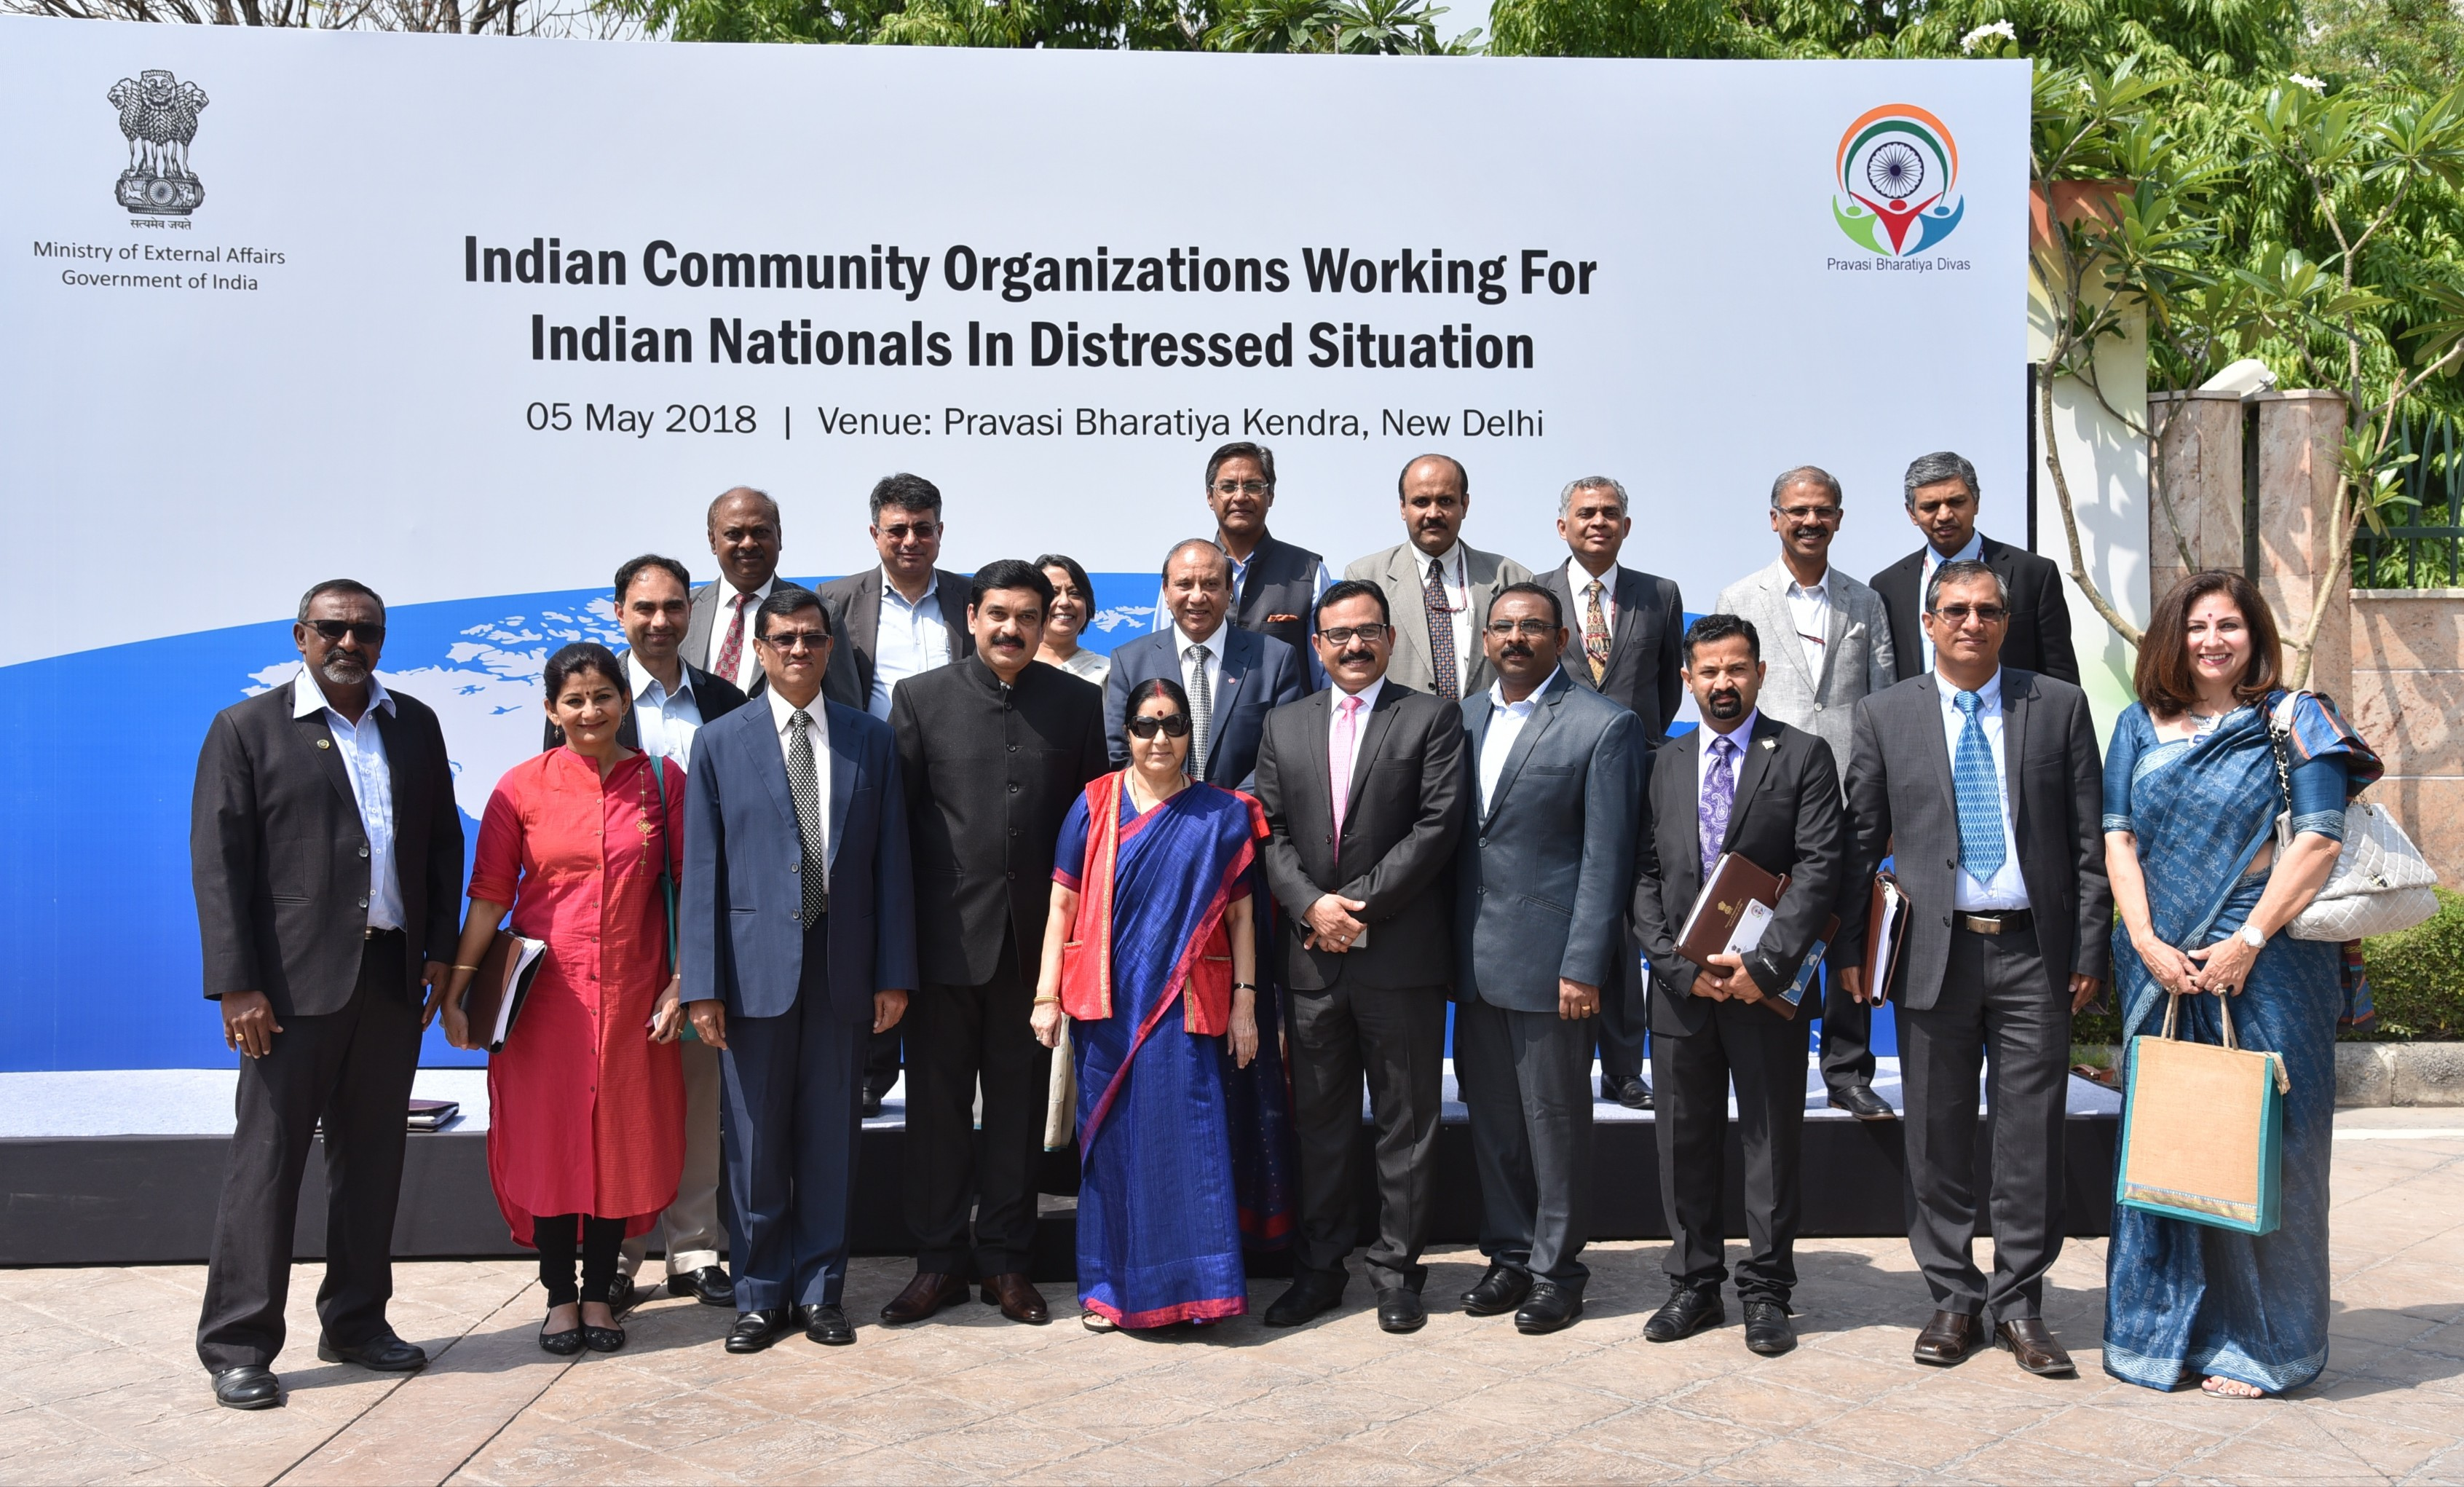 Indian Community Organizations working for Indian Nationals in Distressed Situation